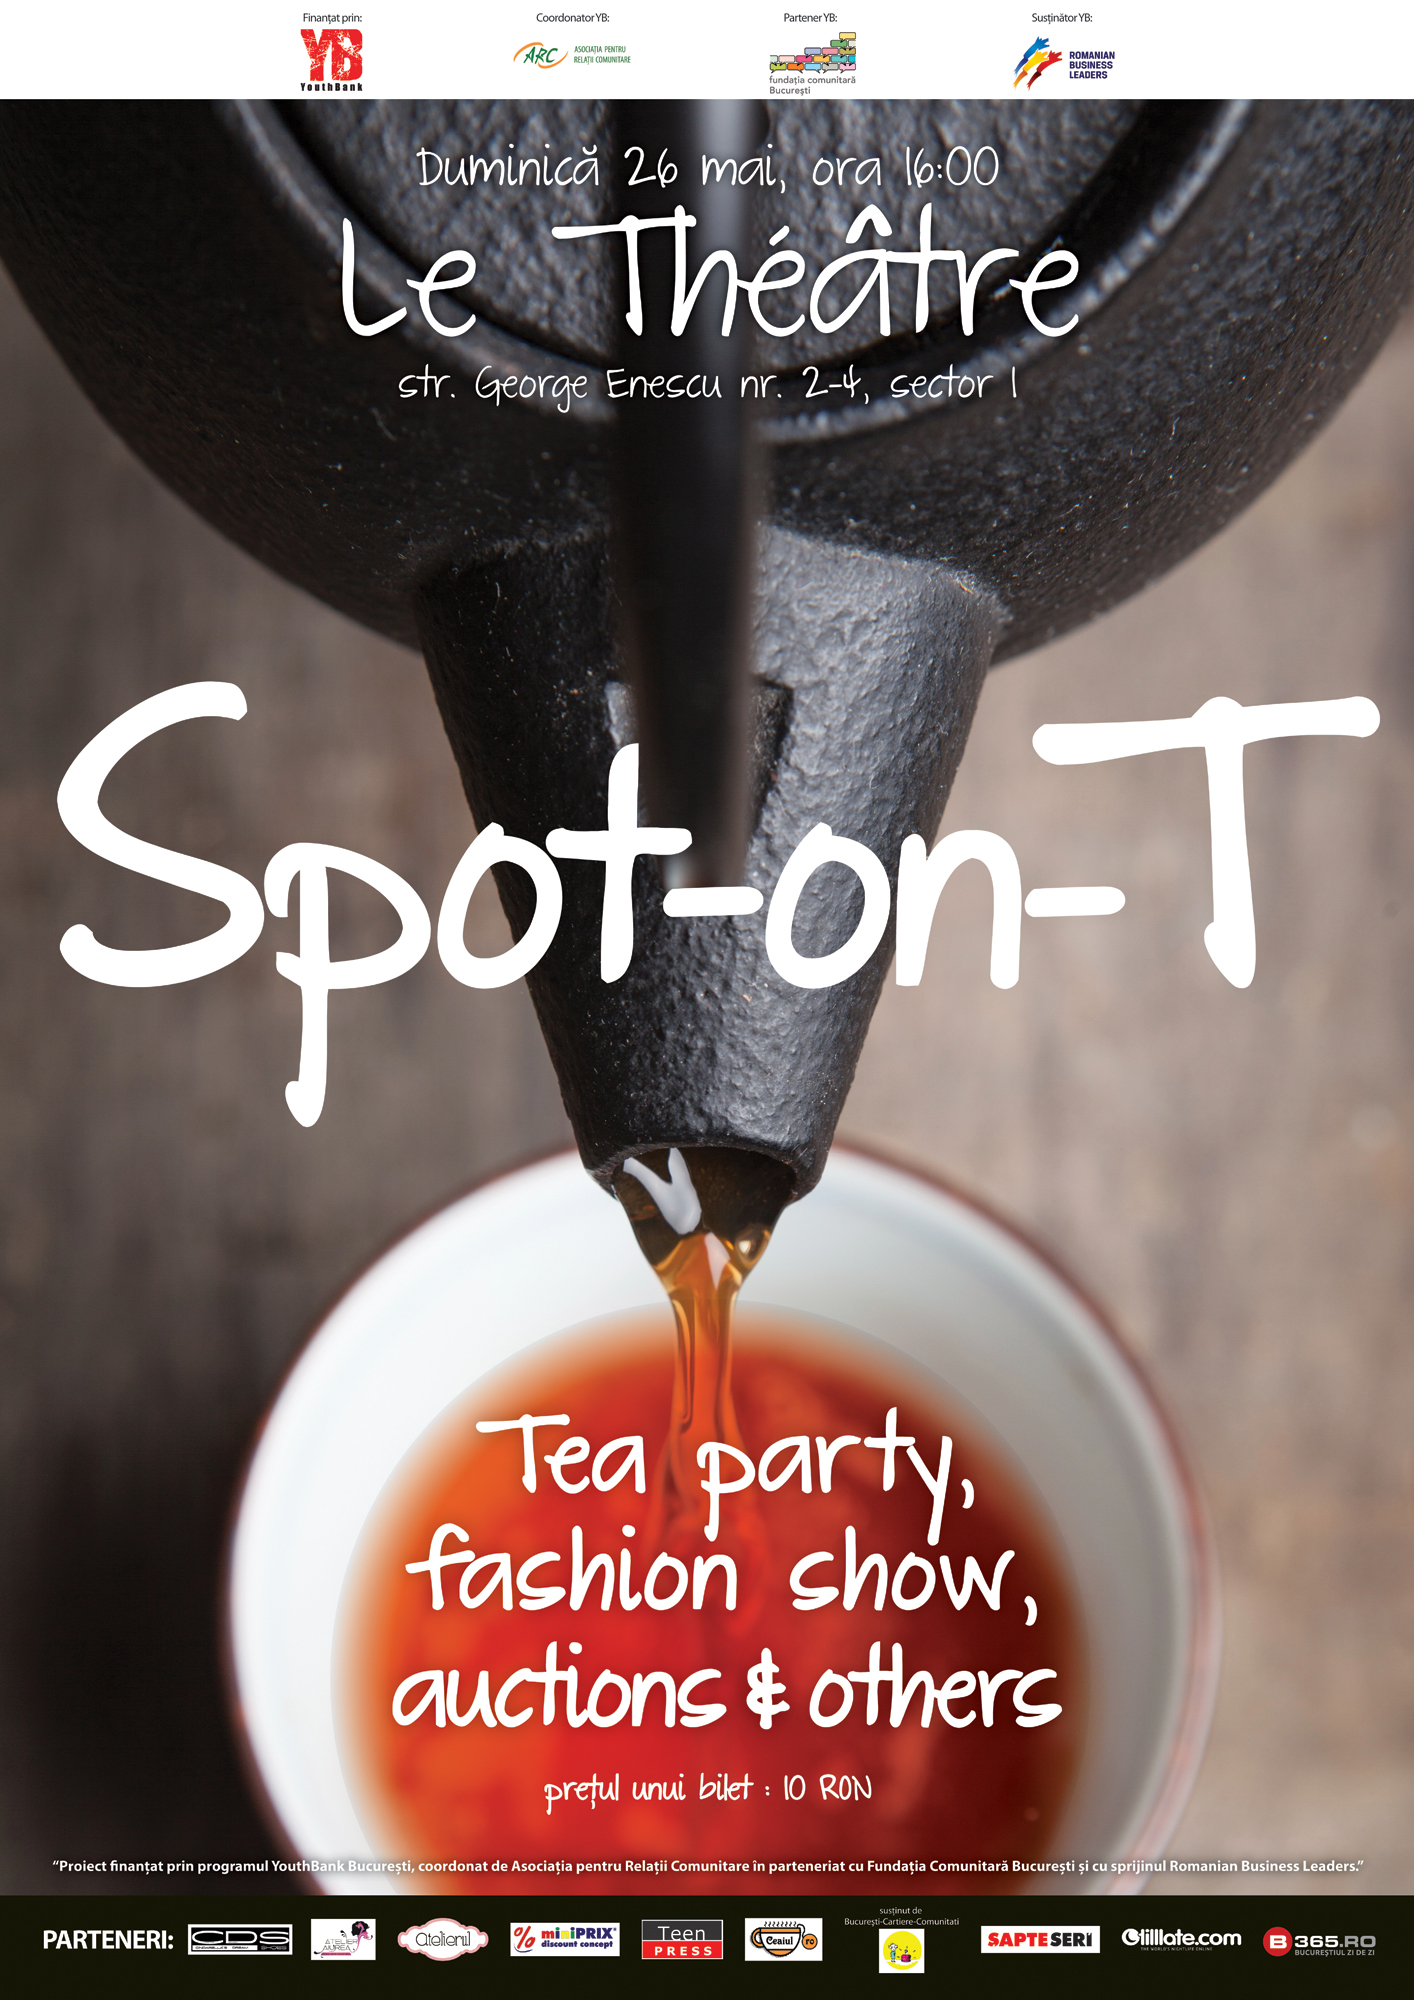 Spot on T - CMYK - A1 - 21mai - Preview2